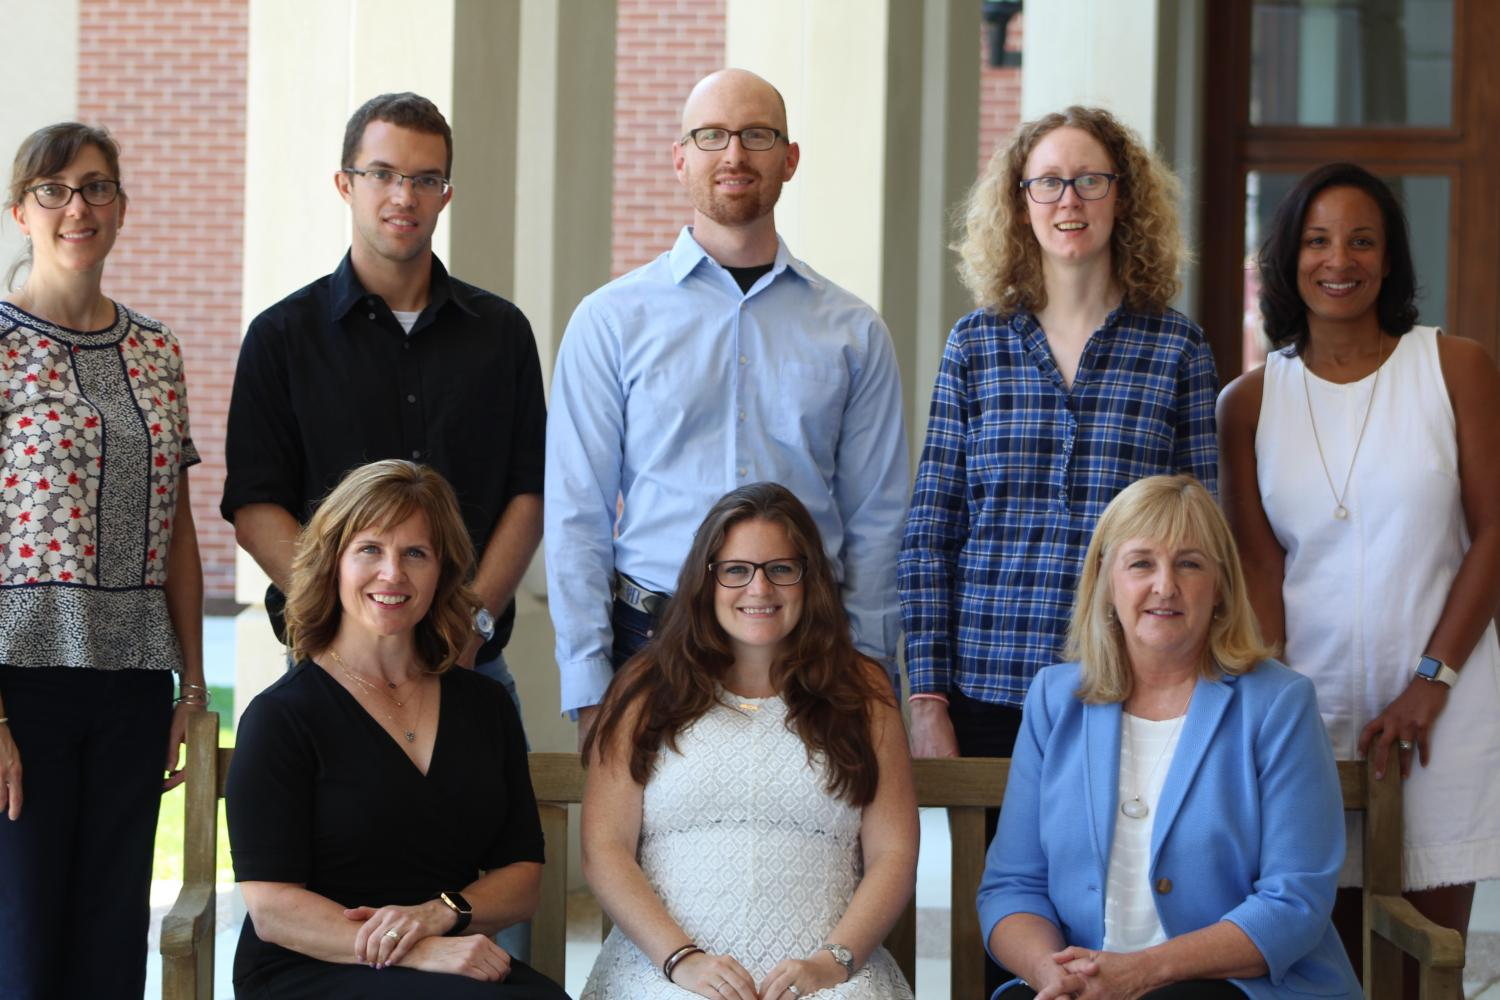 Group photo of new teachers joining faculty.